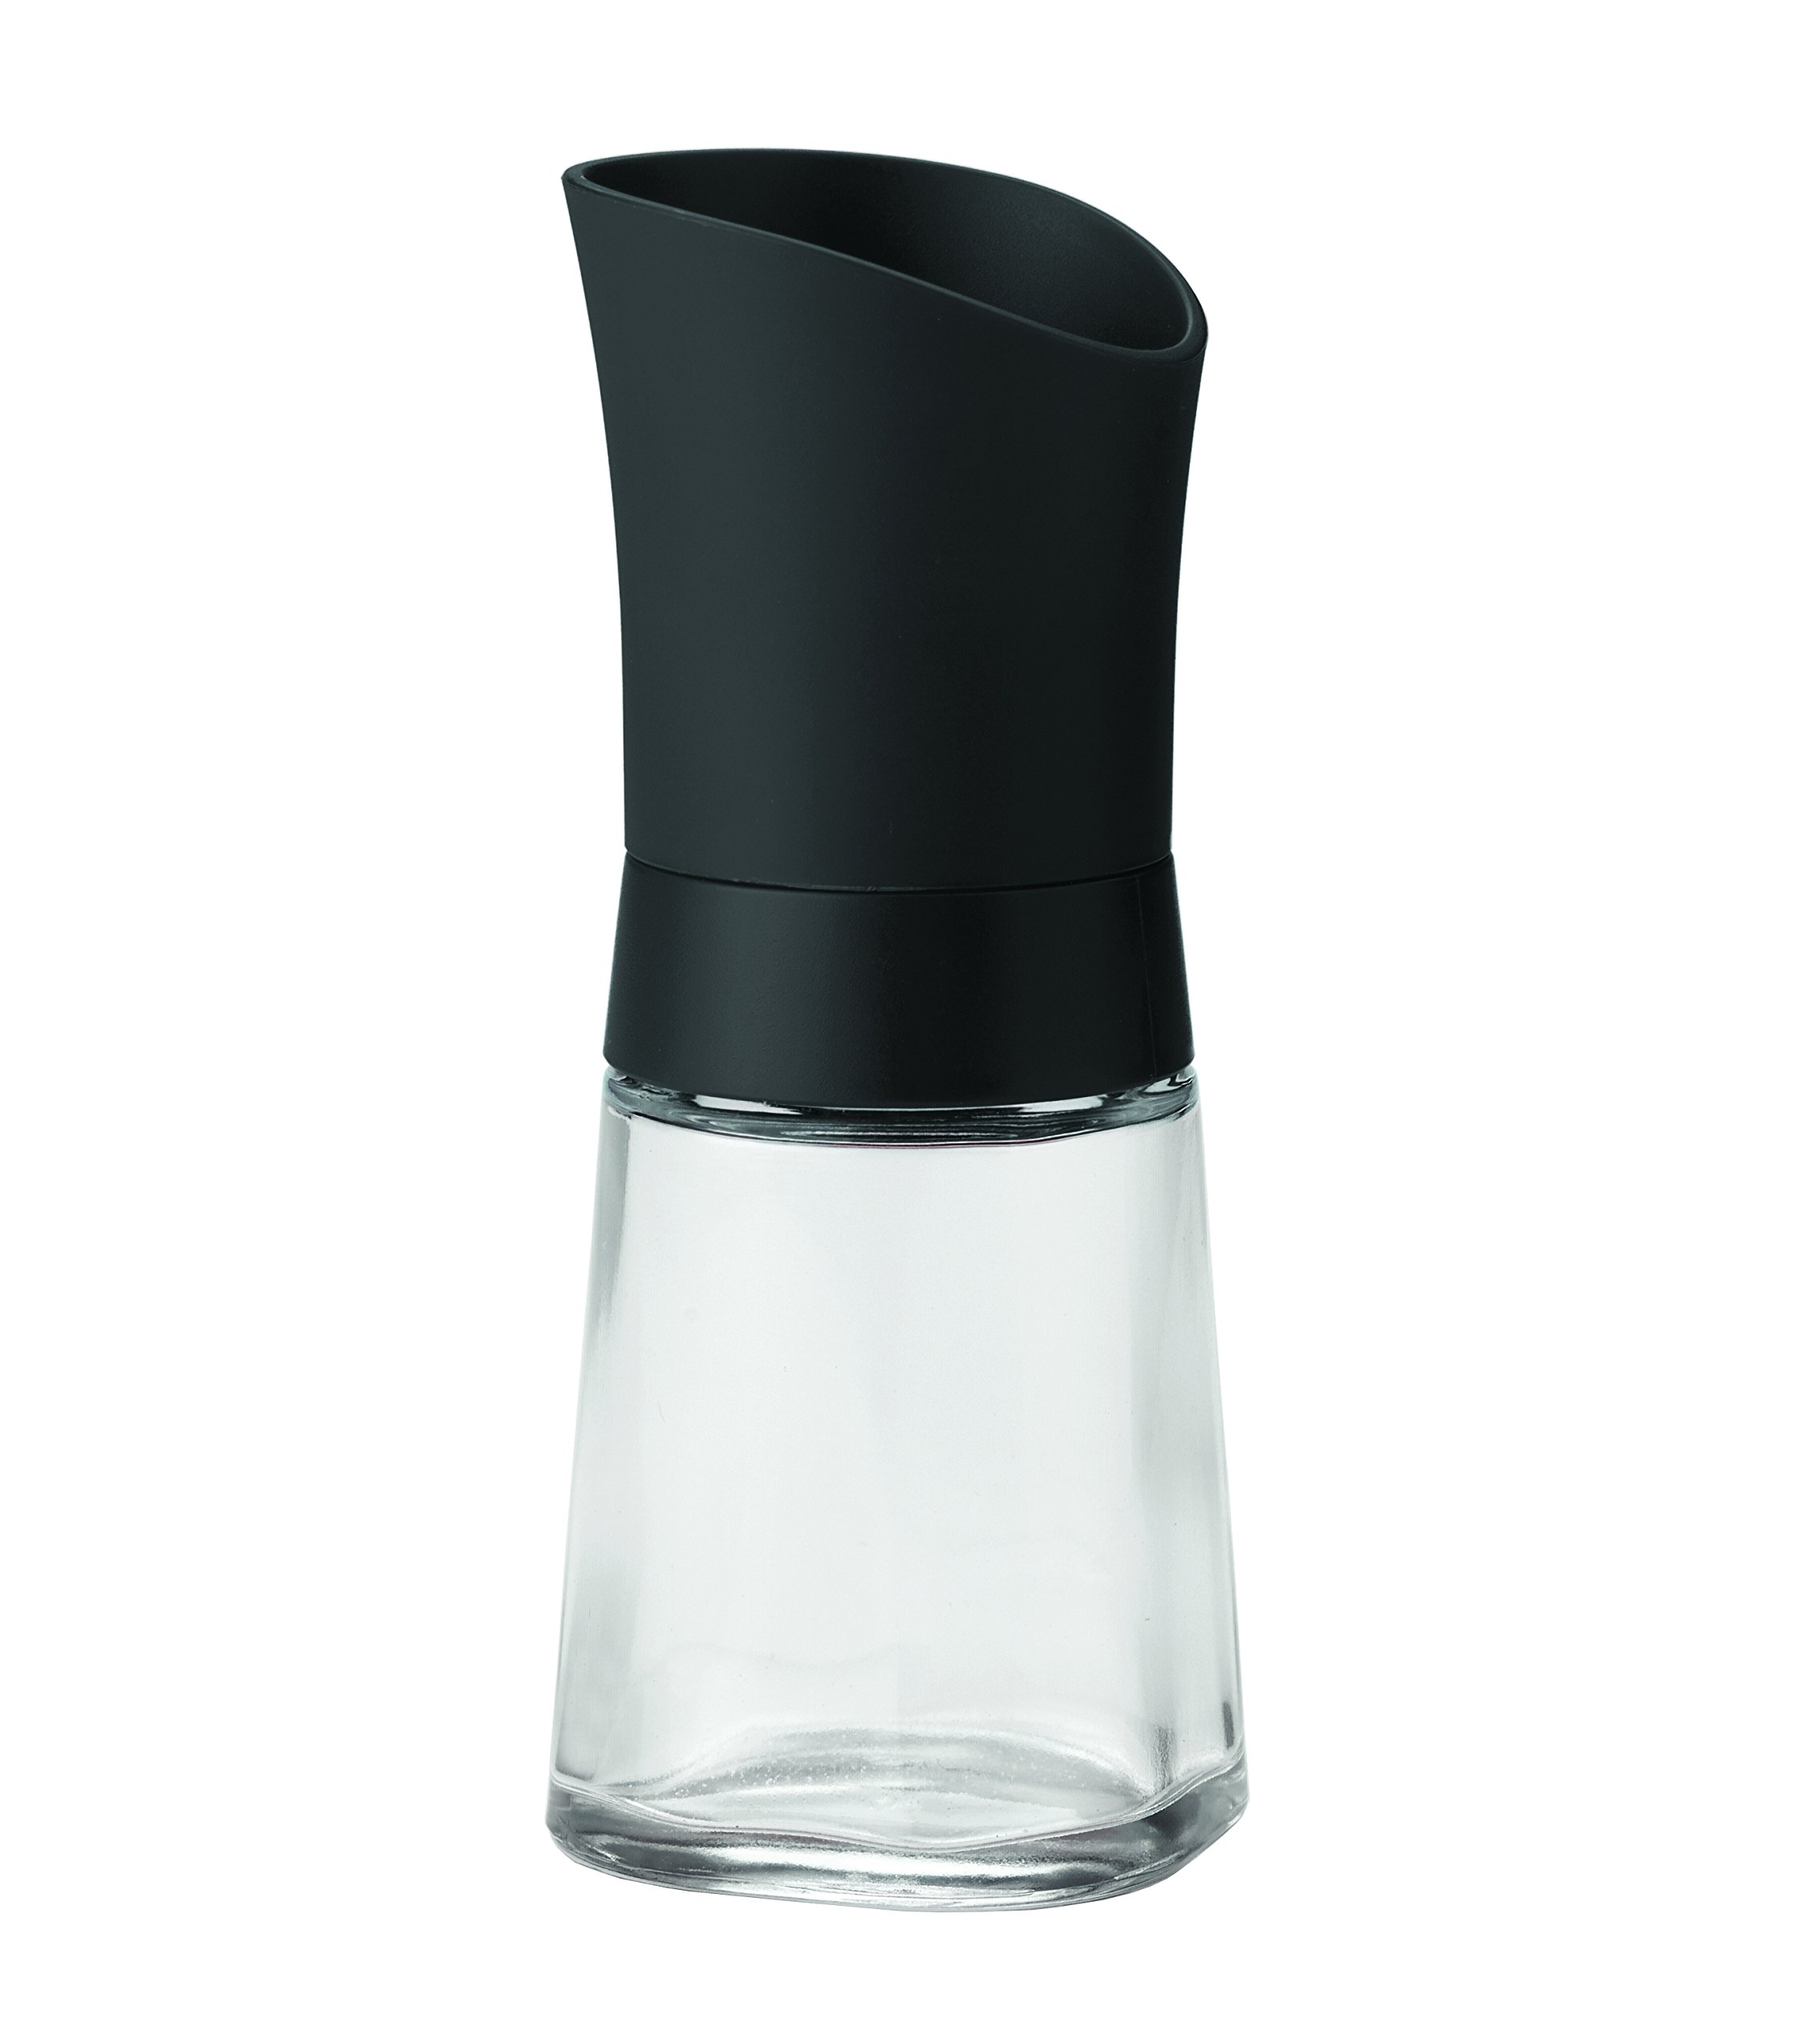 Linden Sweden 012185 Lily Adjustable Ceramic Spice Grinder - Ideal for Sea Salt, Peppercorns, Dried Spices, Herbs, Flaxseed and More, Dishwasher Safe, Glass Body, BPA-Free, 5'', Black by Linden Sweden